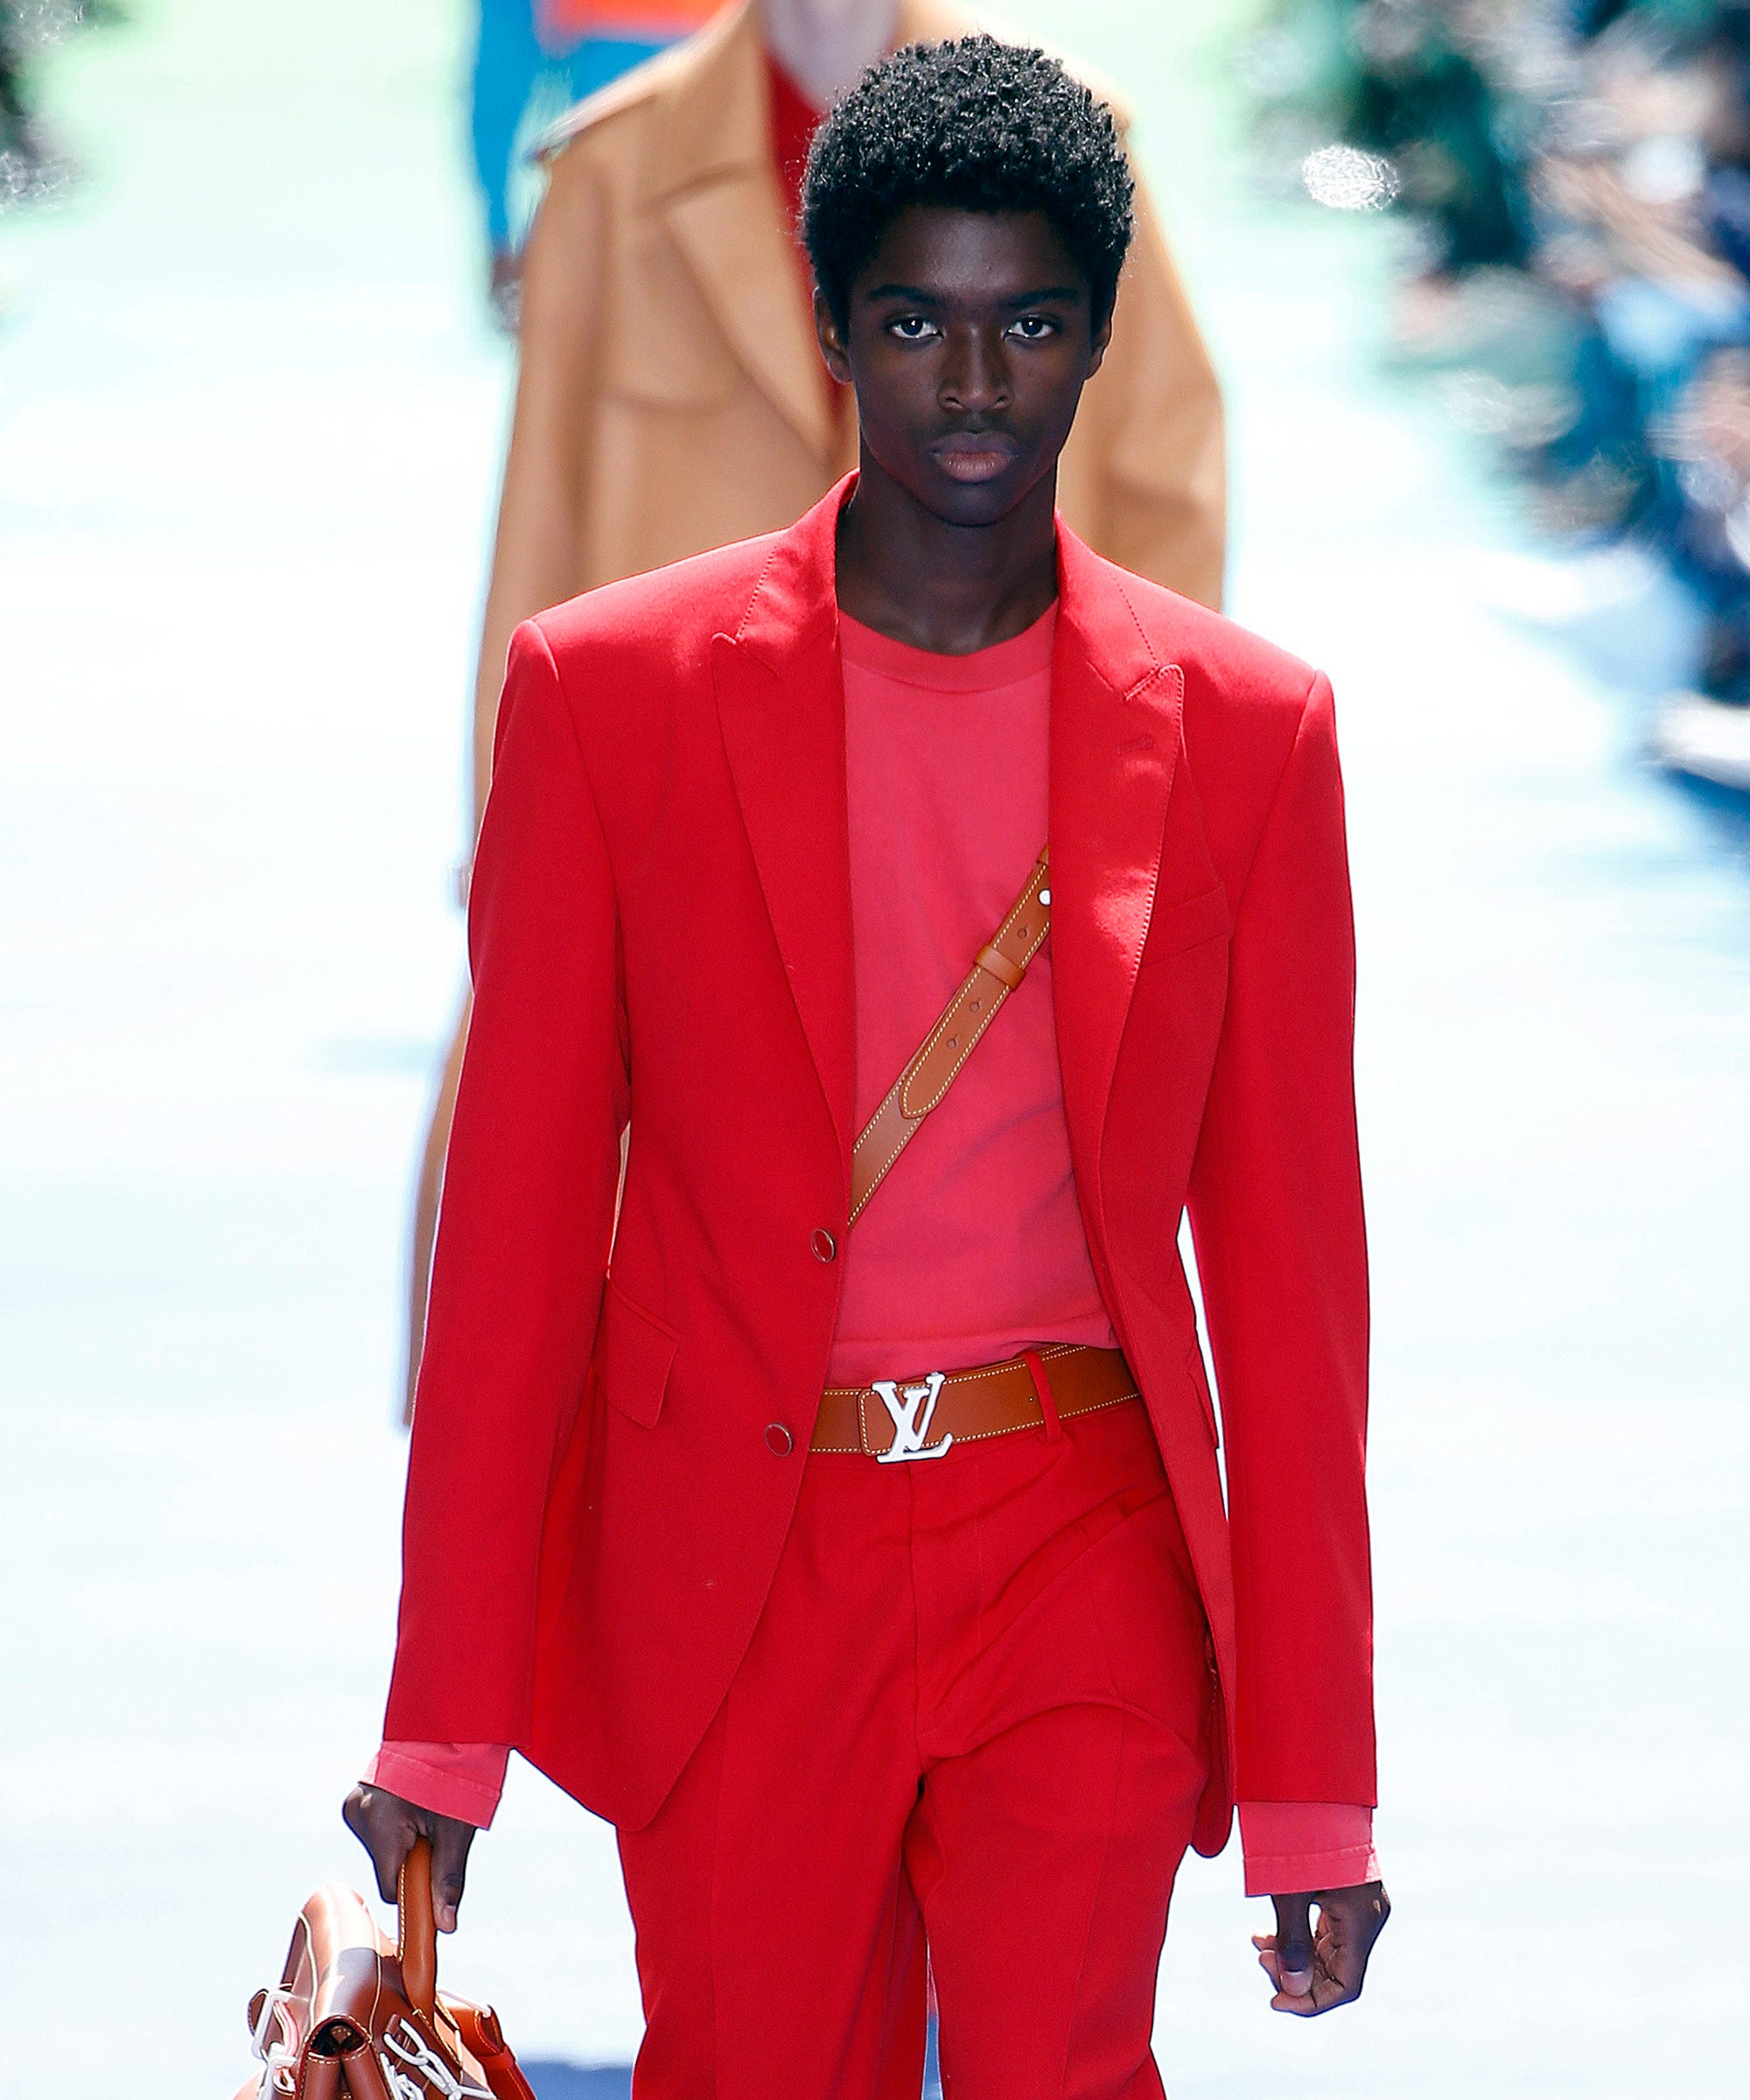 e79d2a439455 Virgil Abloh Louis Vuitton Spring 2019 Collection